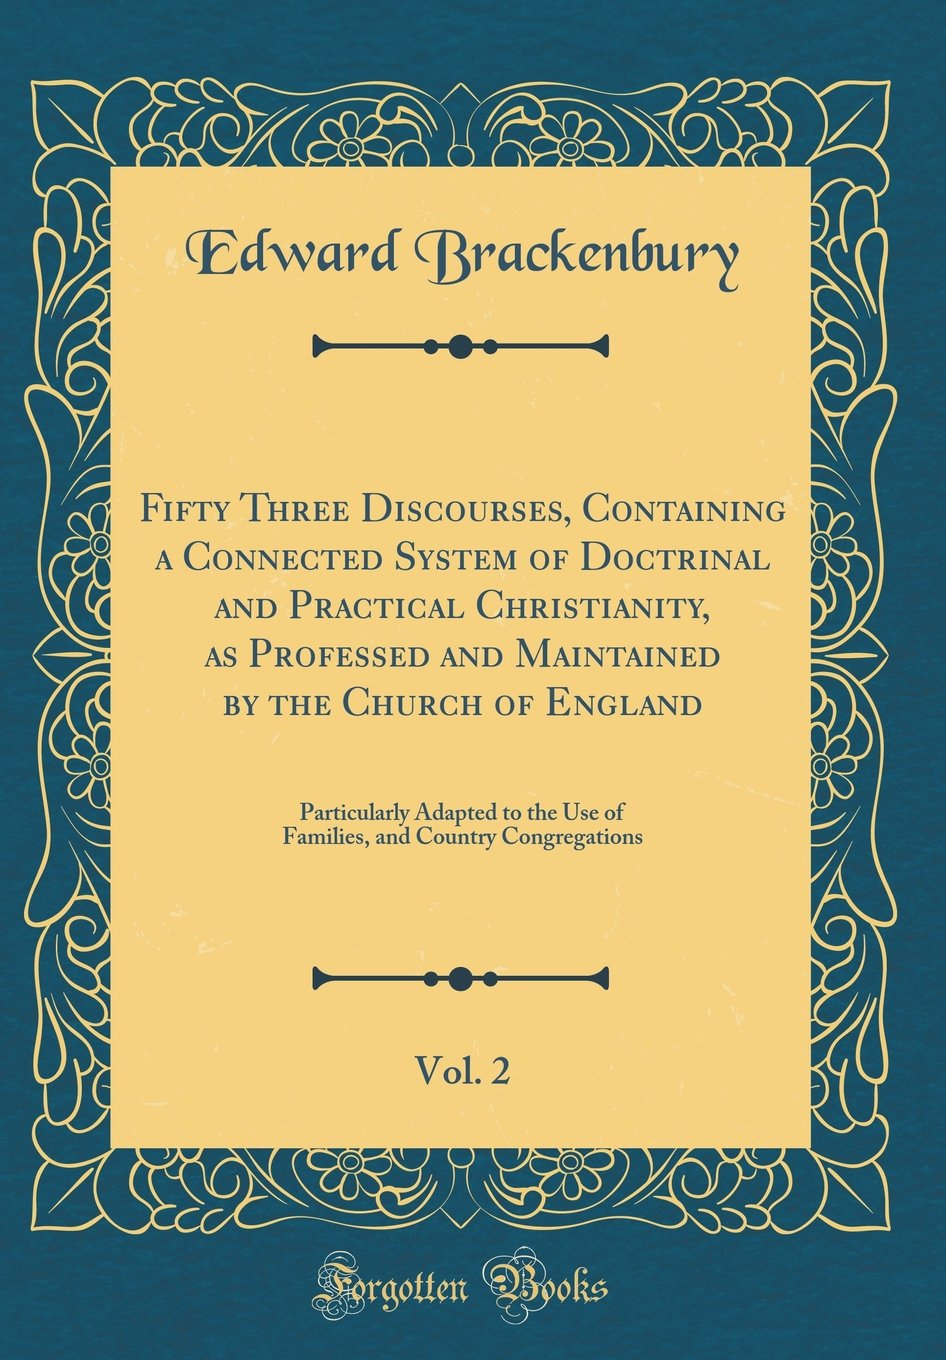 Fifty Three Discourses, Containing a Connected System of Doctrinal and Practical Christianity, as Professed and Maintained by the Church of England, ... and Country Congregations (Classic Reprint) PDF